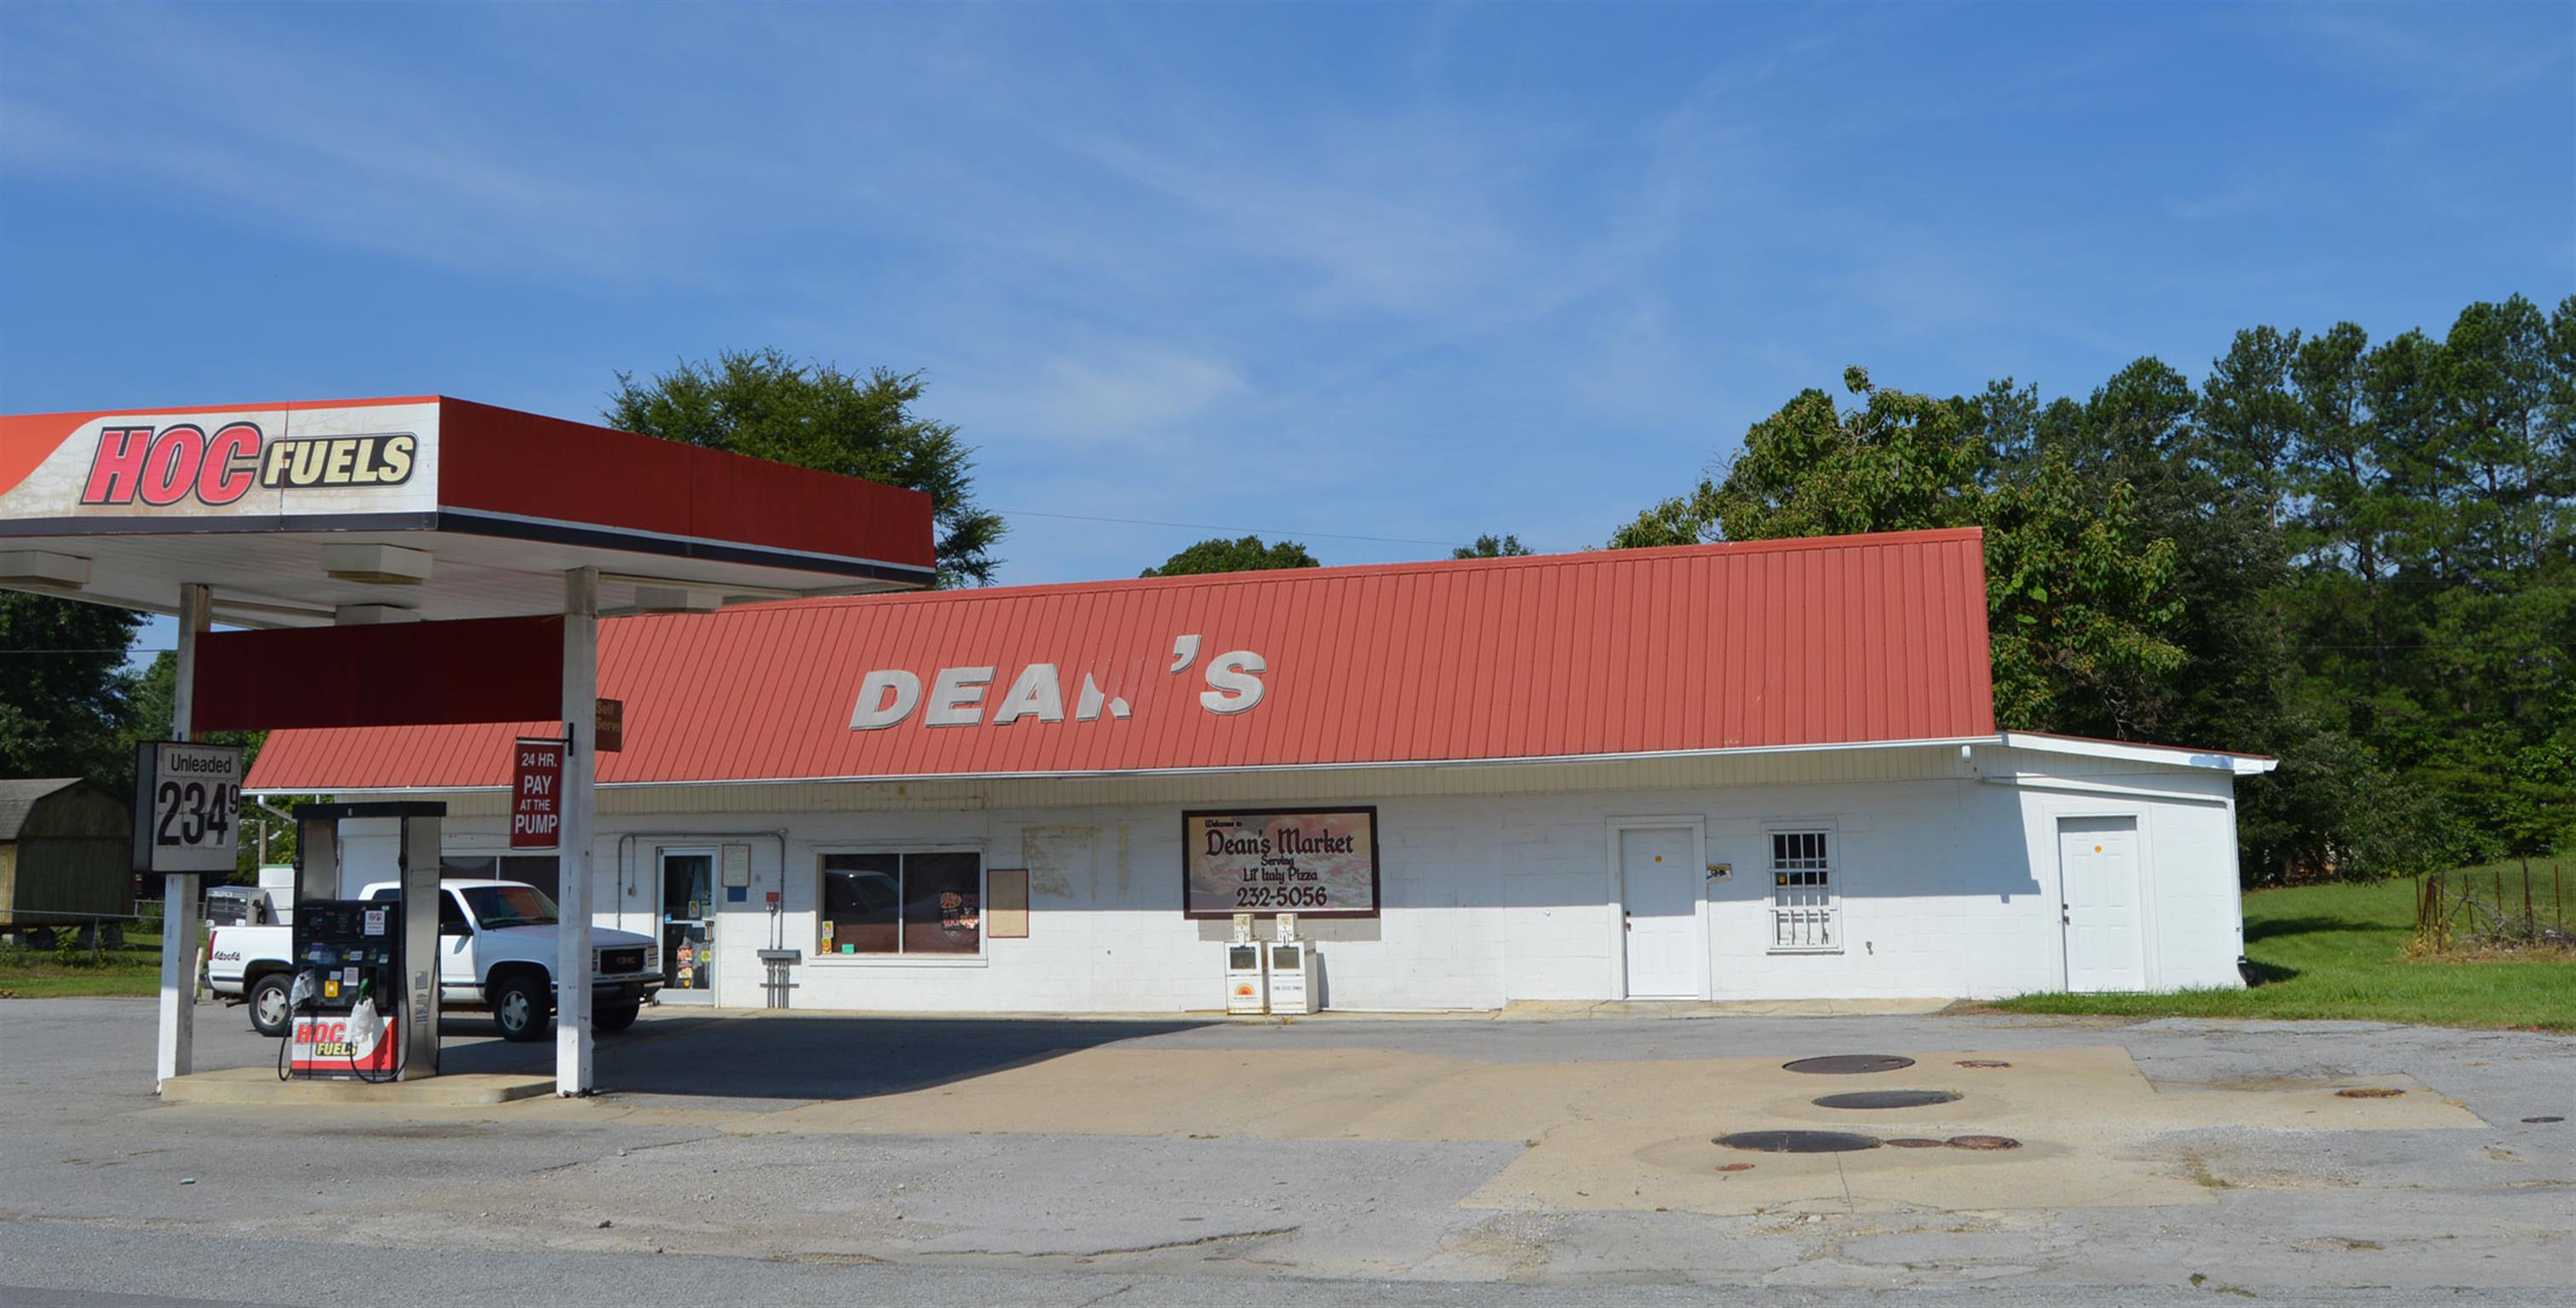 DEANS MARKET HAS BEEN A FIXTURE IN THE BUMPUS MILLS AREA FOR NEARLY 60 YEARS/BUILDING IS NOW VACANT AND READY FOR A NEW BUSINESS AND OWNER/GAS PUMPS STILL IN PLACE WITH AGREEMENT WITH HOLLINGSWORTH OIL COMPANY/MULTIPLE USE OPTIONS/LOT BEHIND STORE CONDUCIVE TO ADDING MINI-STORAGE UNITS/SECURITY GATE INSIDE BUILDING/PRICE HAS BEEN REDUCED - PROPERTY SOLD AS-IS